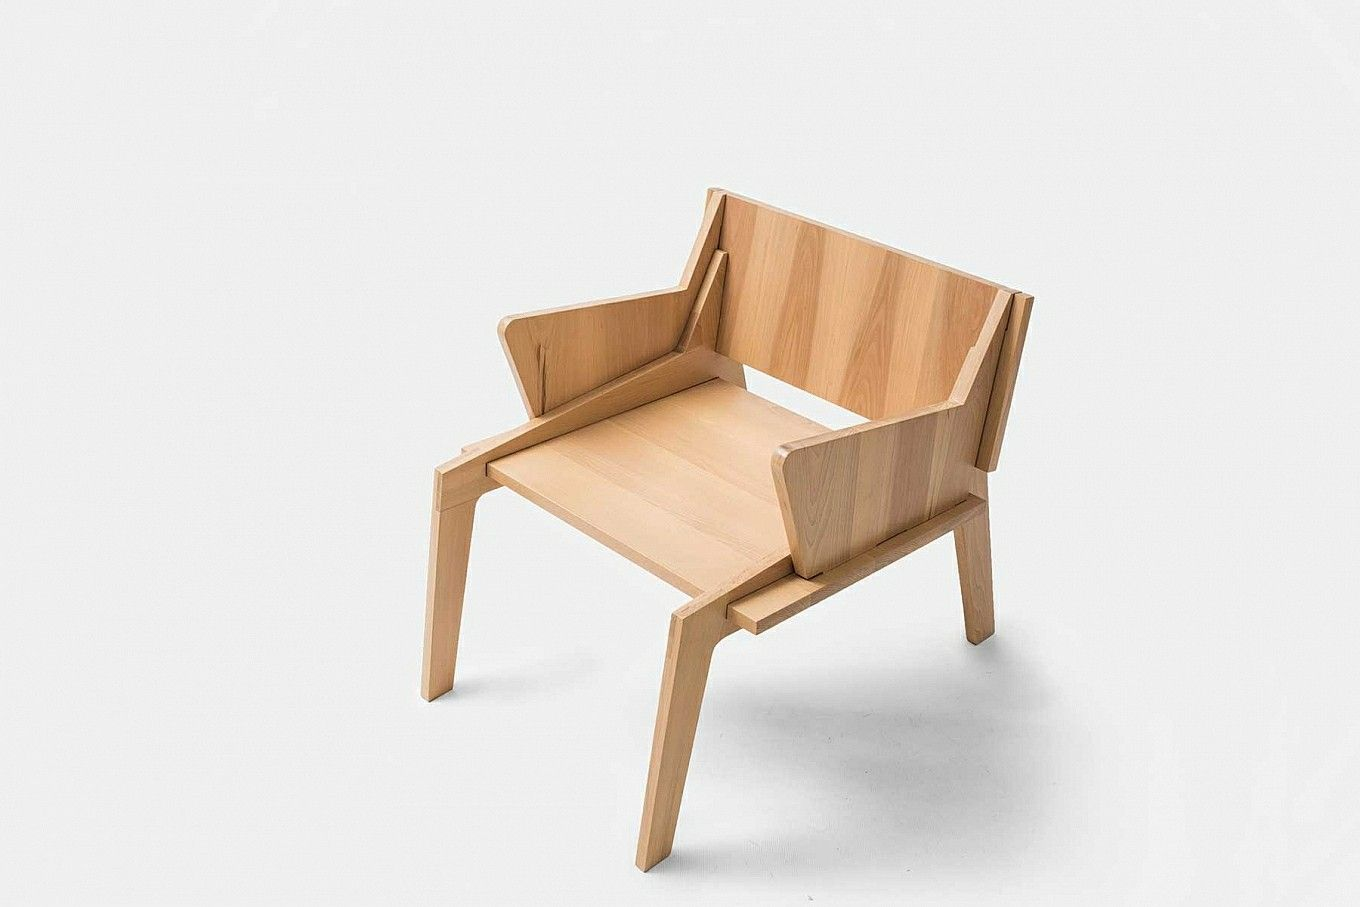 Pin By Roslan On Plywood Projects With Images Wood Chair Chair Chair Design